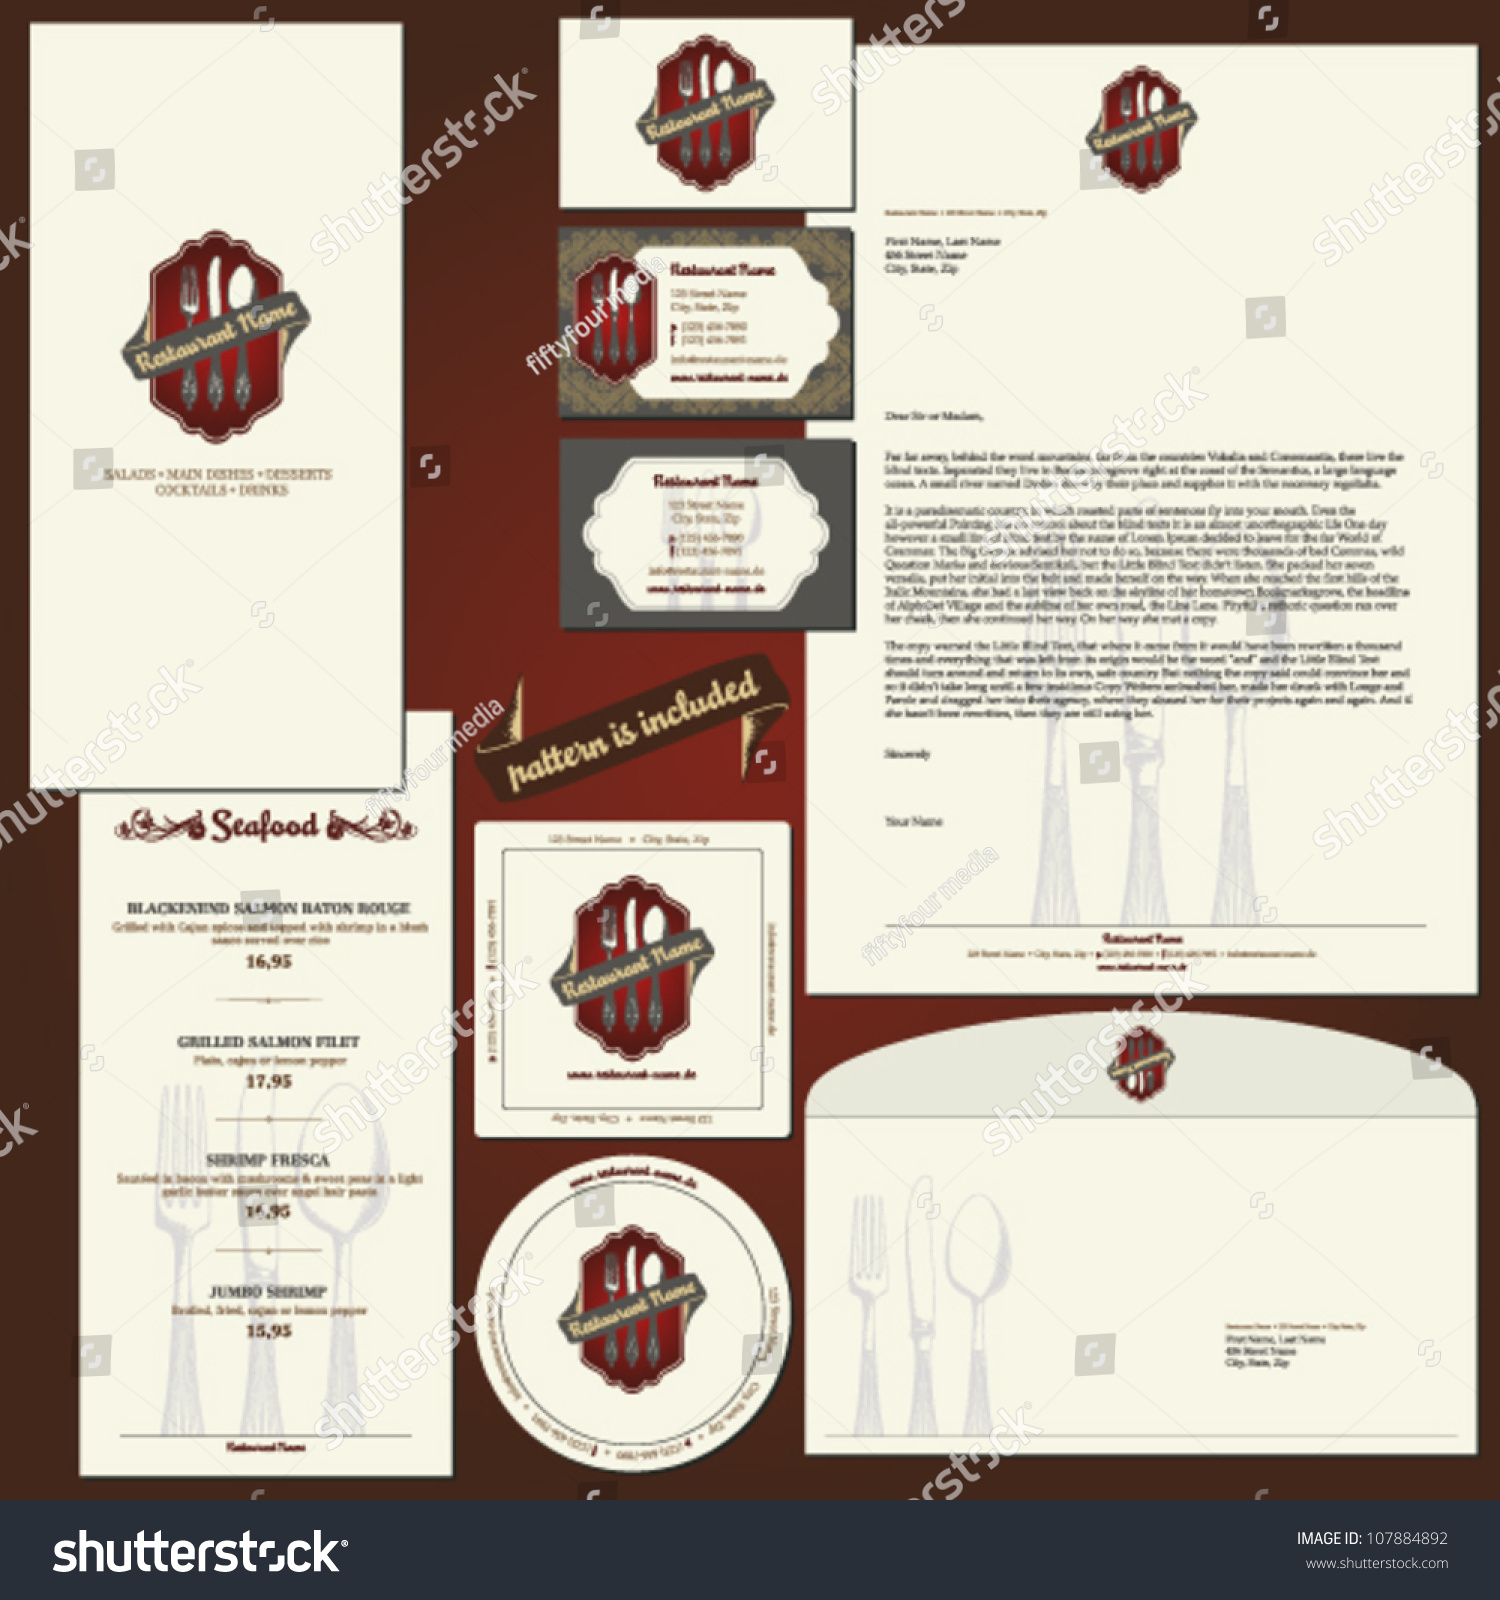 Corporate identity template for restaurants with layouts for Restaurant letterhead templates free